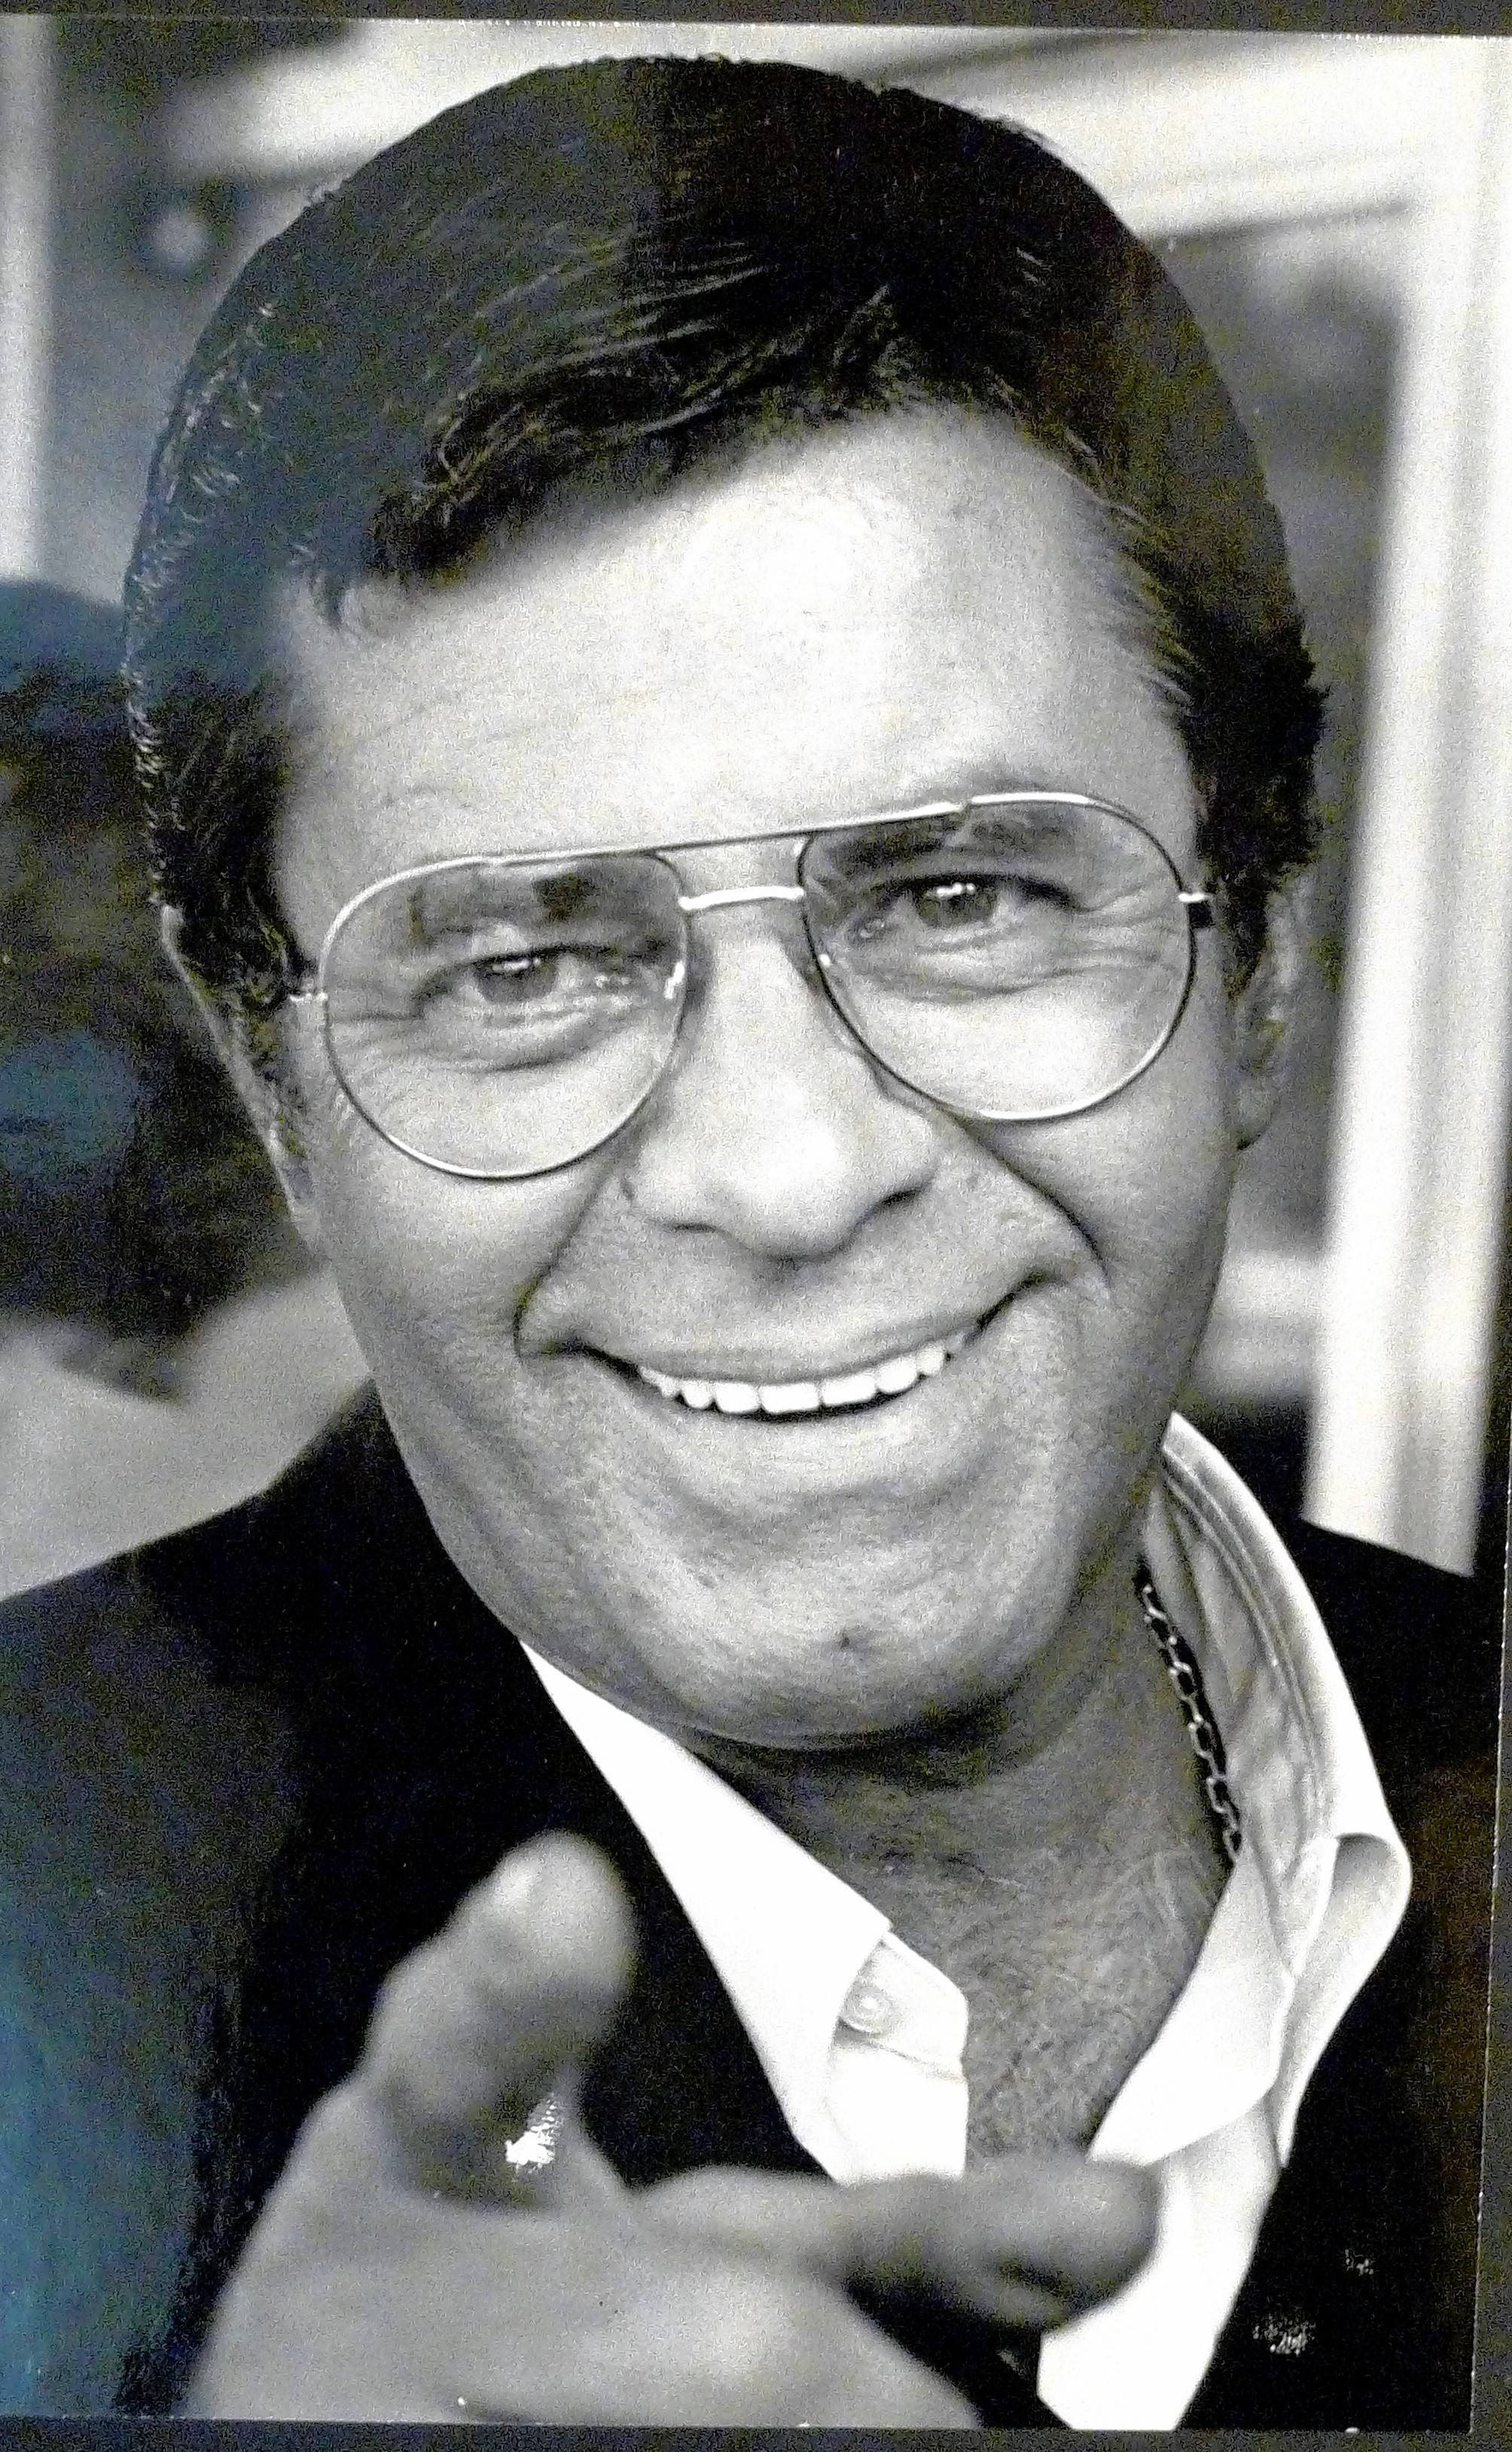 Jerry Lewis, then 56, was photographed during his 1982 interview with Dann Gire at Chicago's Ritz Carlton Hotel.